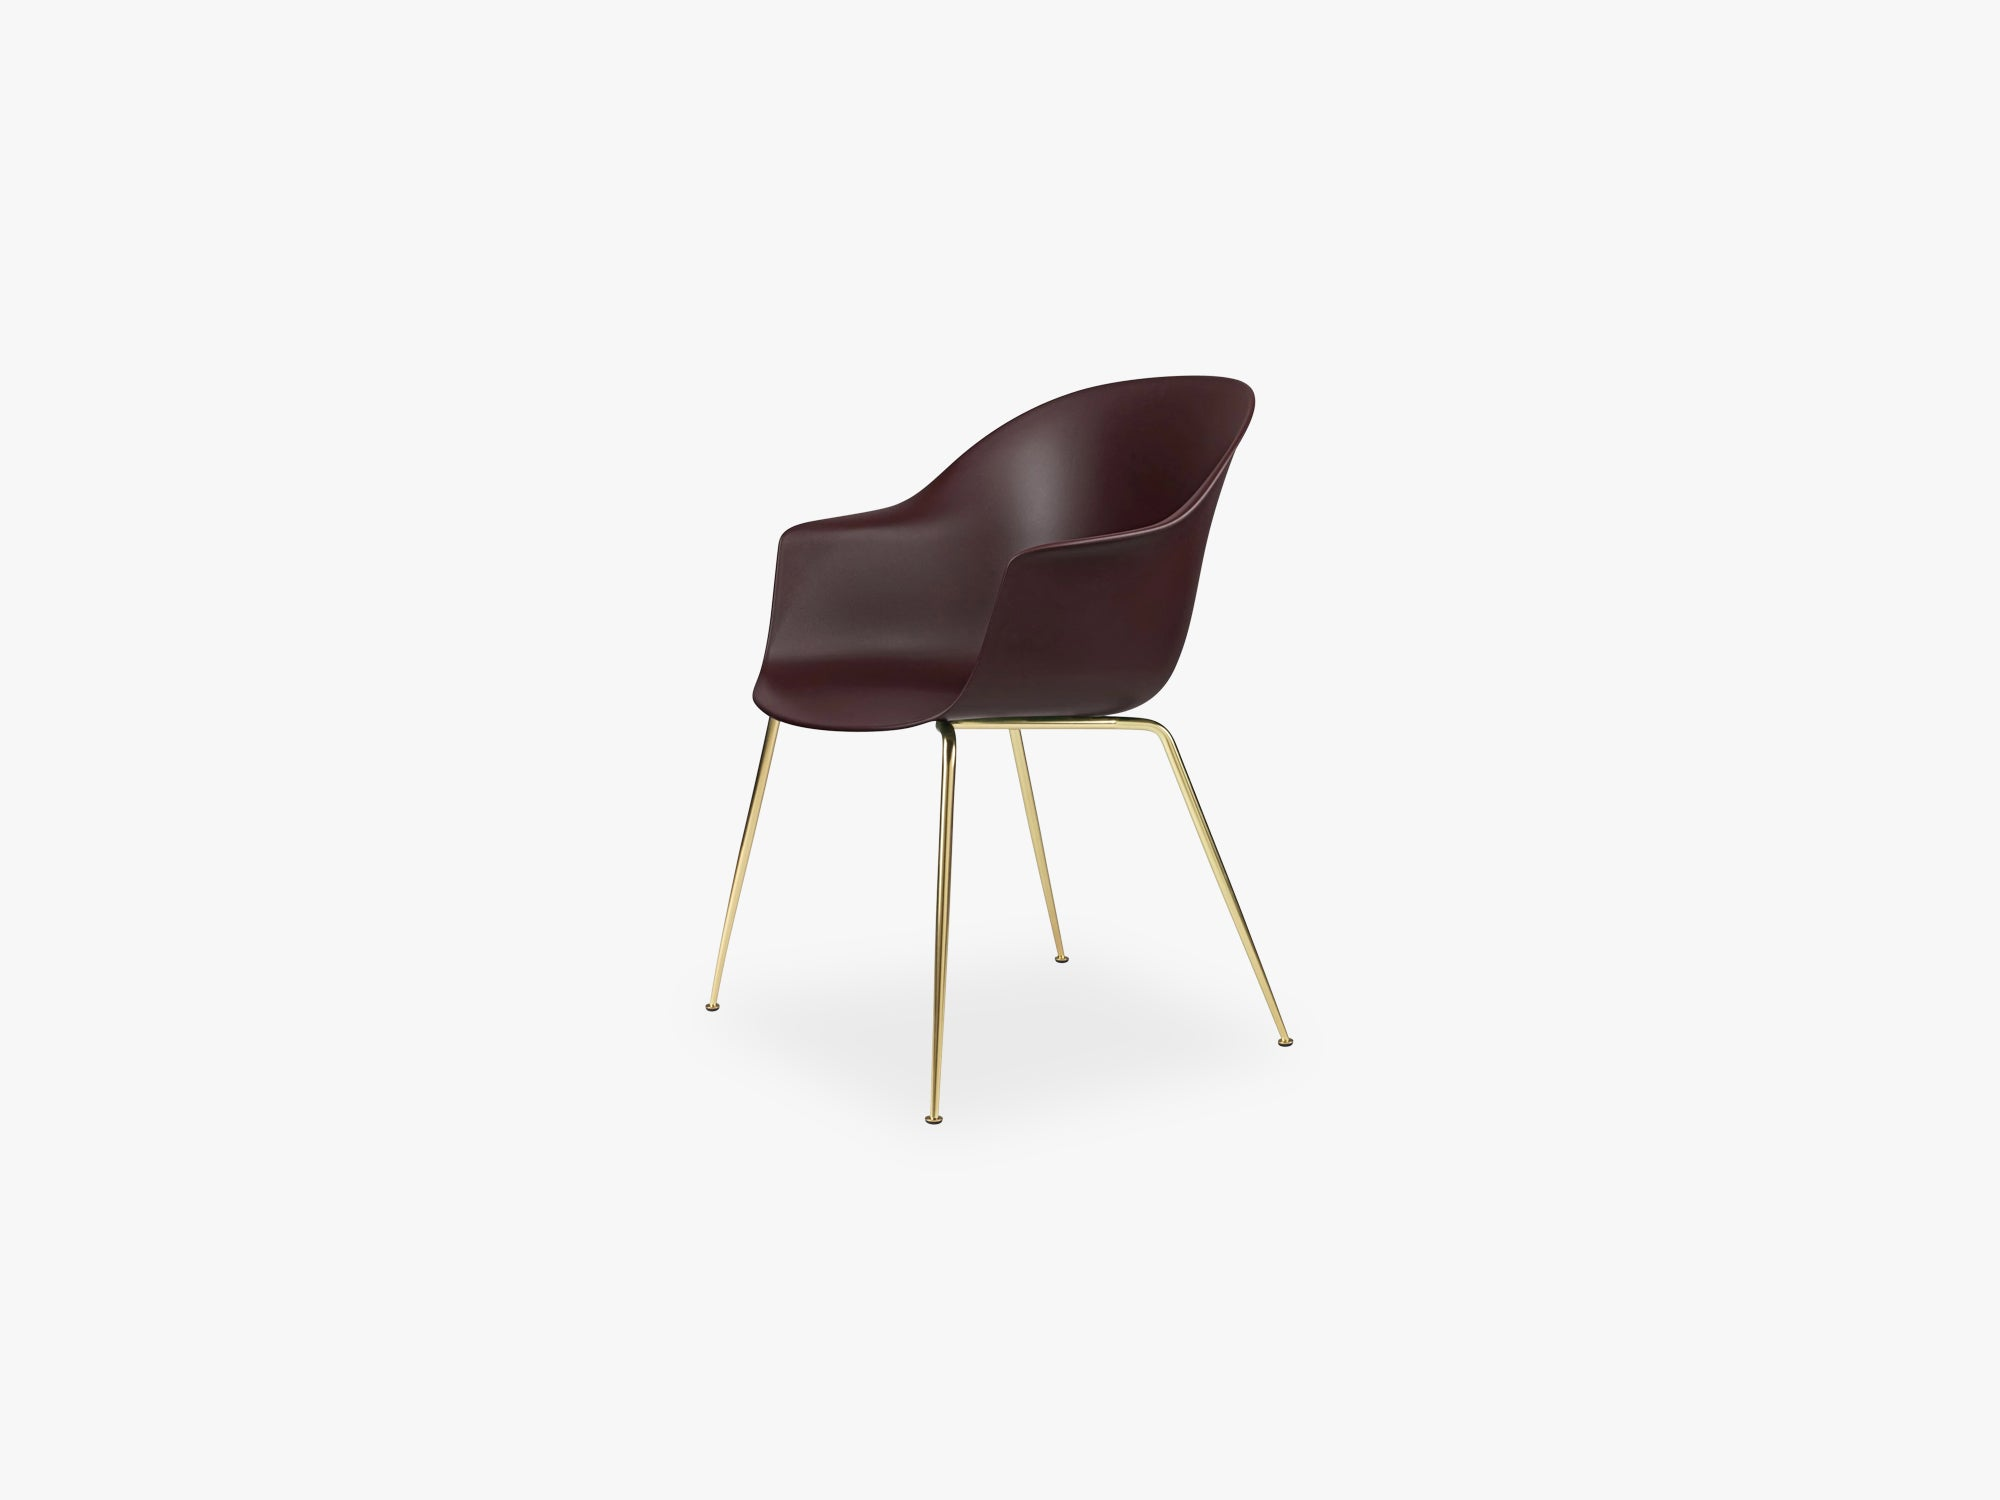 Bat Dining Chair - Skal m Conic base - Brass Semi Matt, Dark Pink fra GUBI